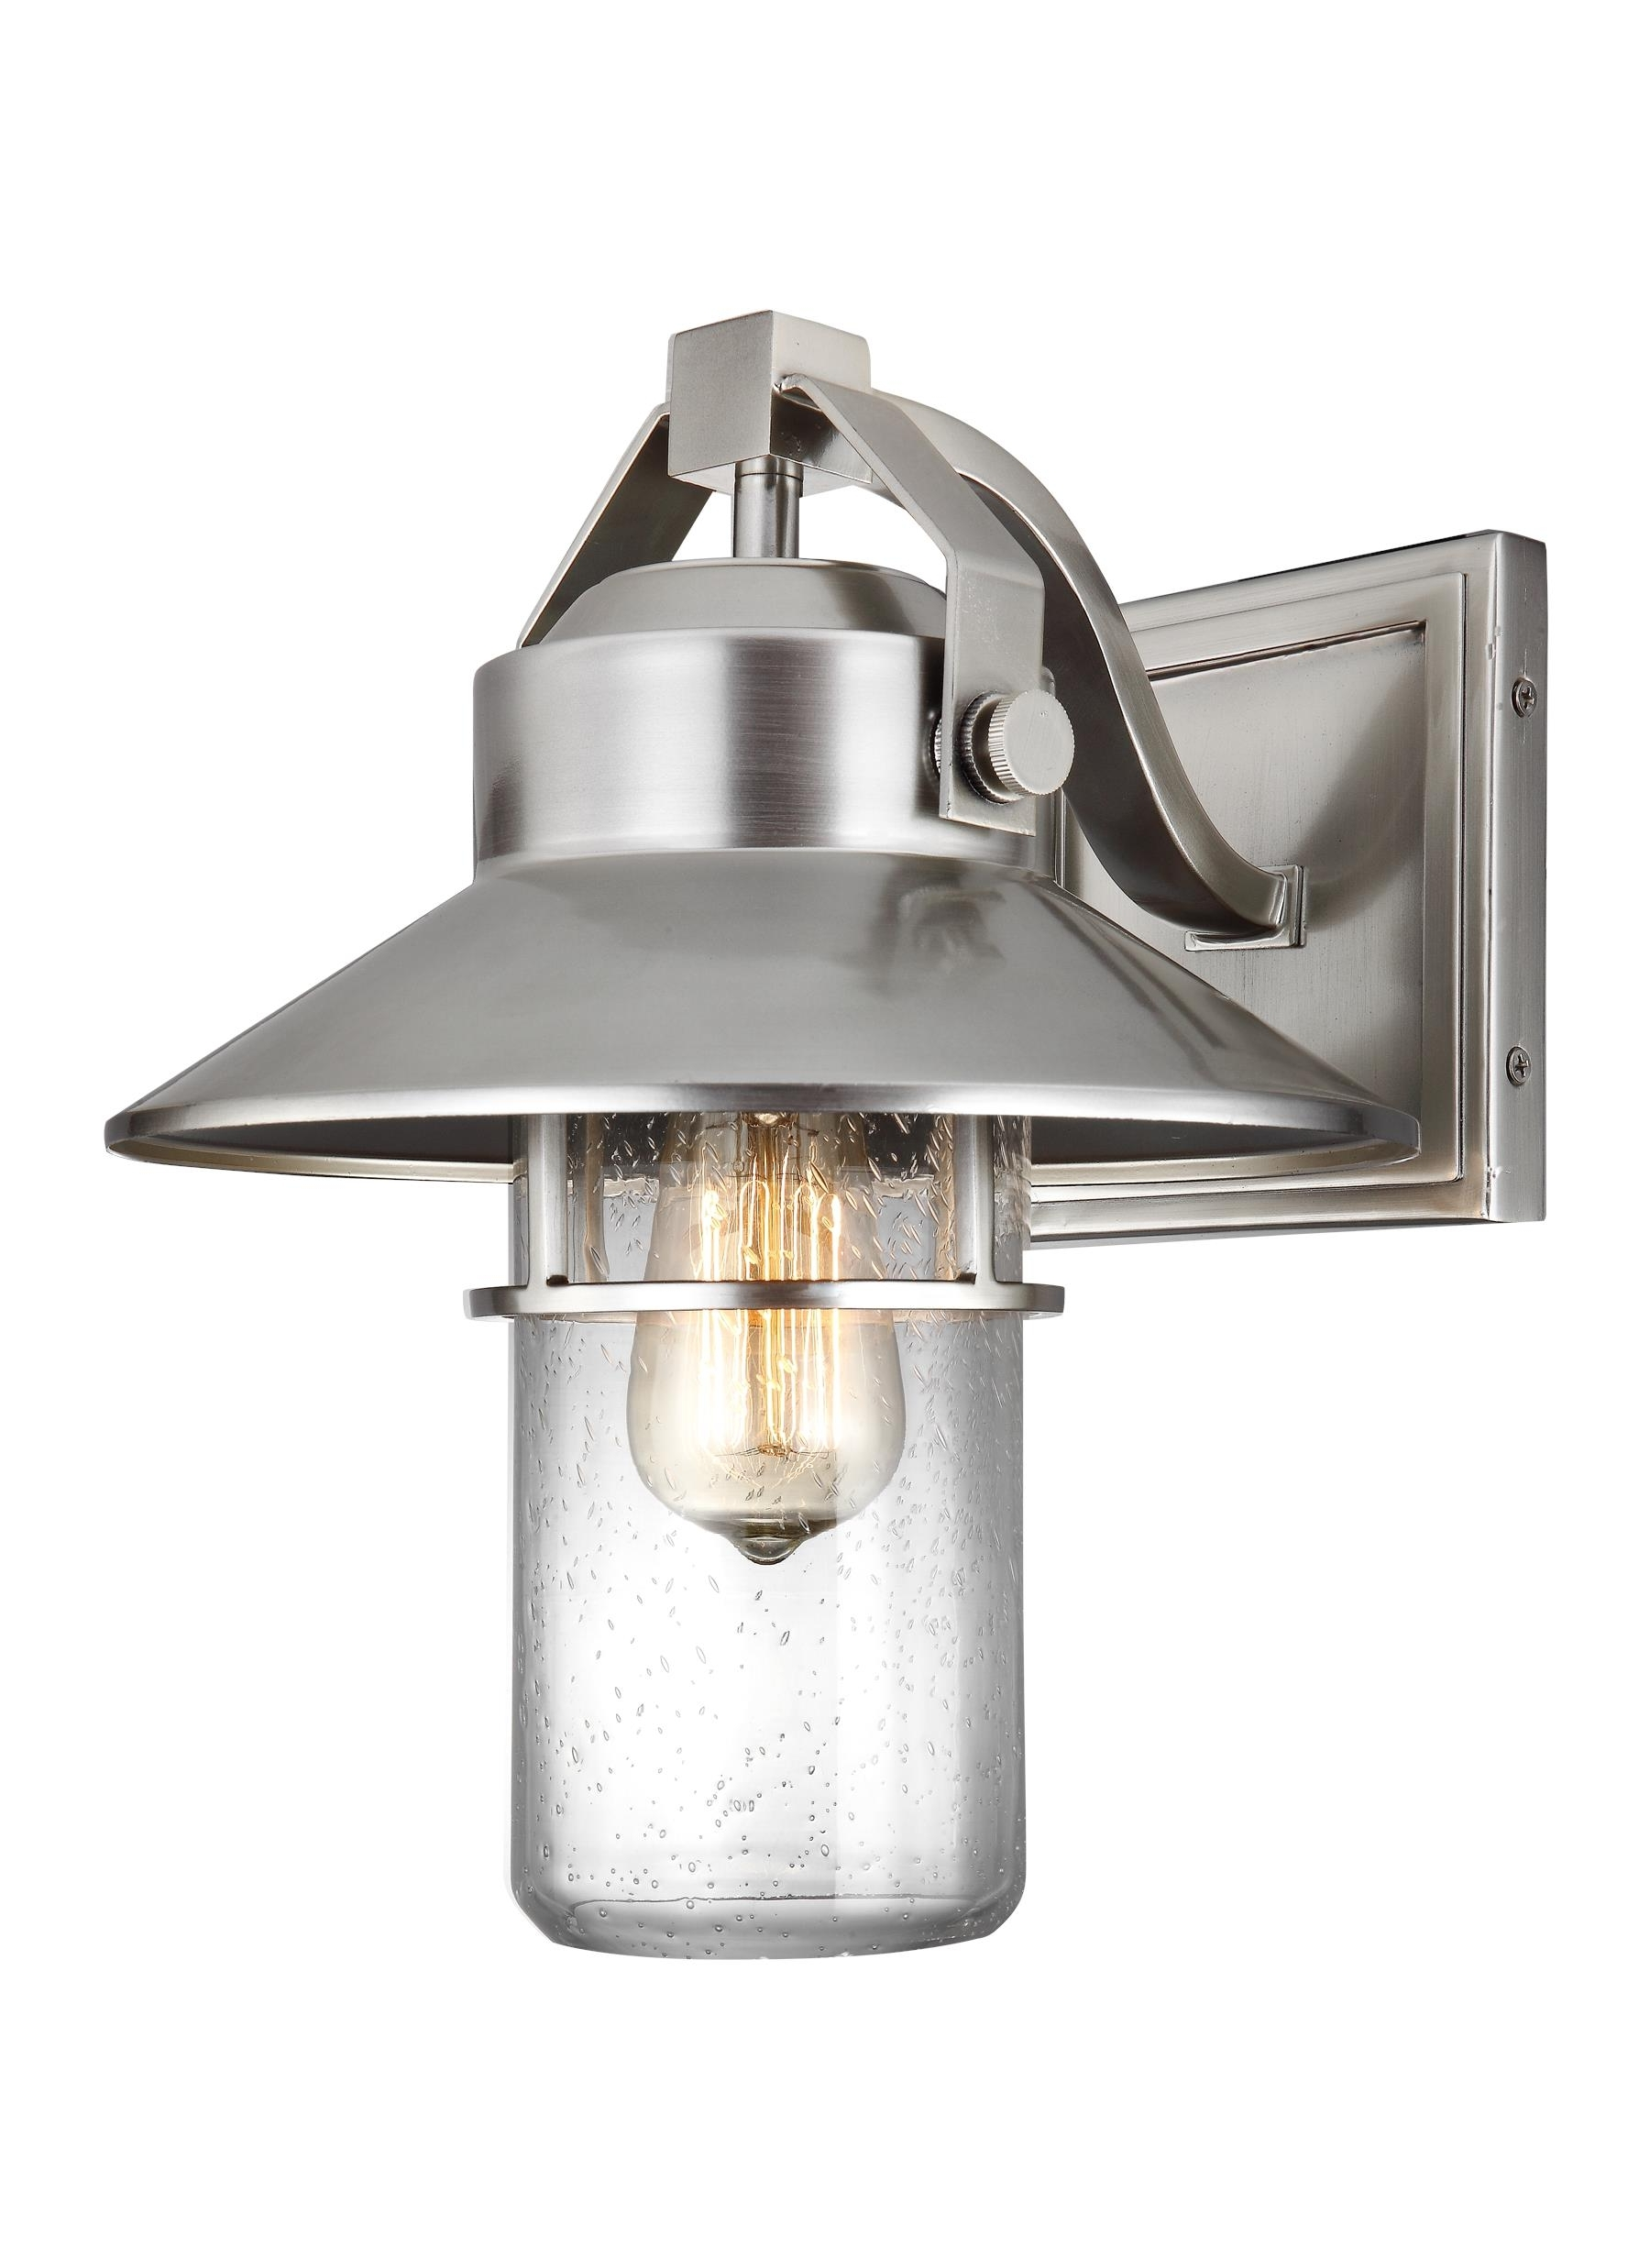 Best And Newest Xl Outdoor Lanterns Inside Feiss Product Search (View 17 of 20)